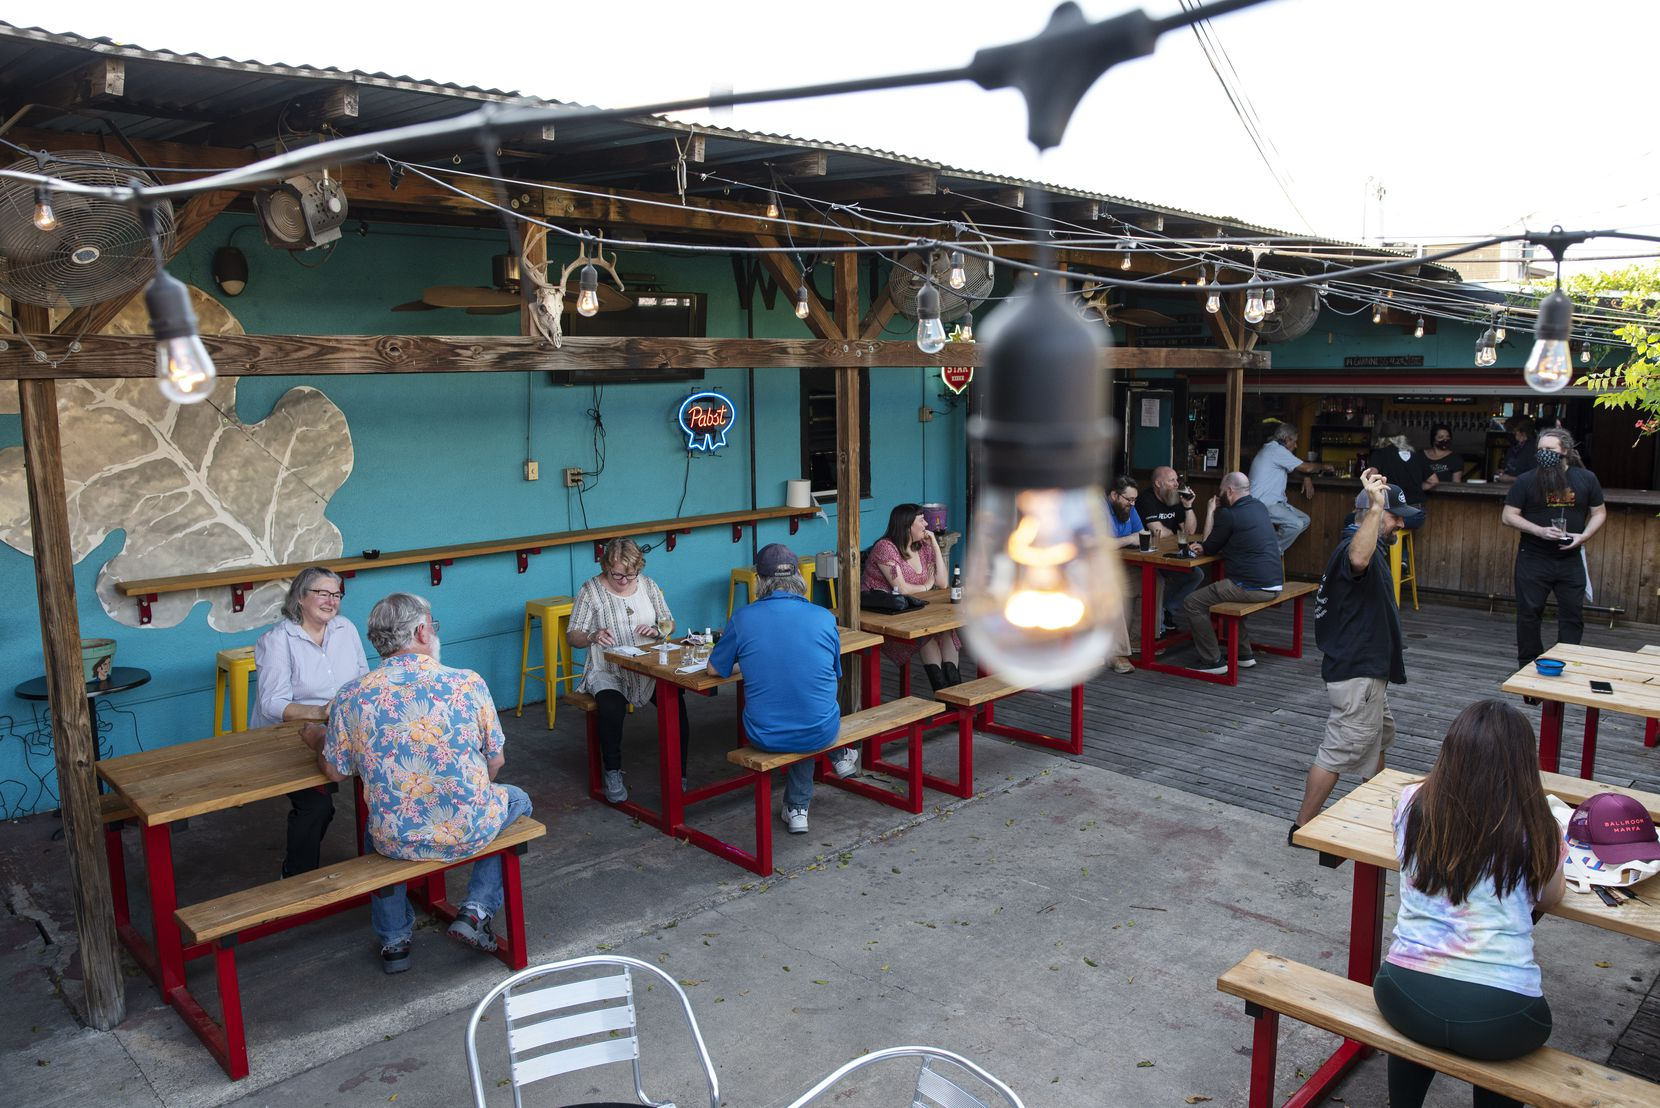 Folks were spaced apart as they took advantage of the nice weather and reopened bar service at Dan's Silverleaf.